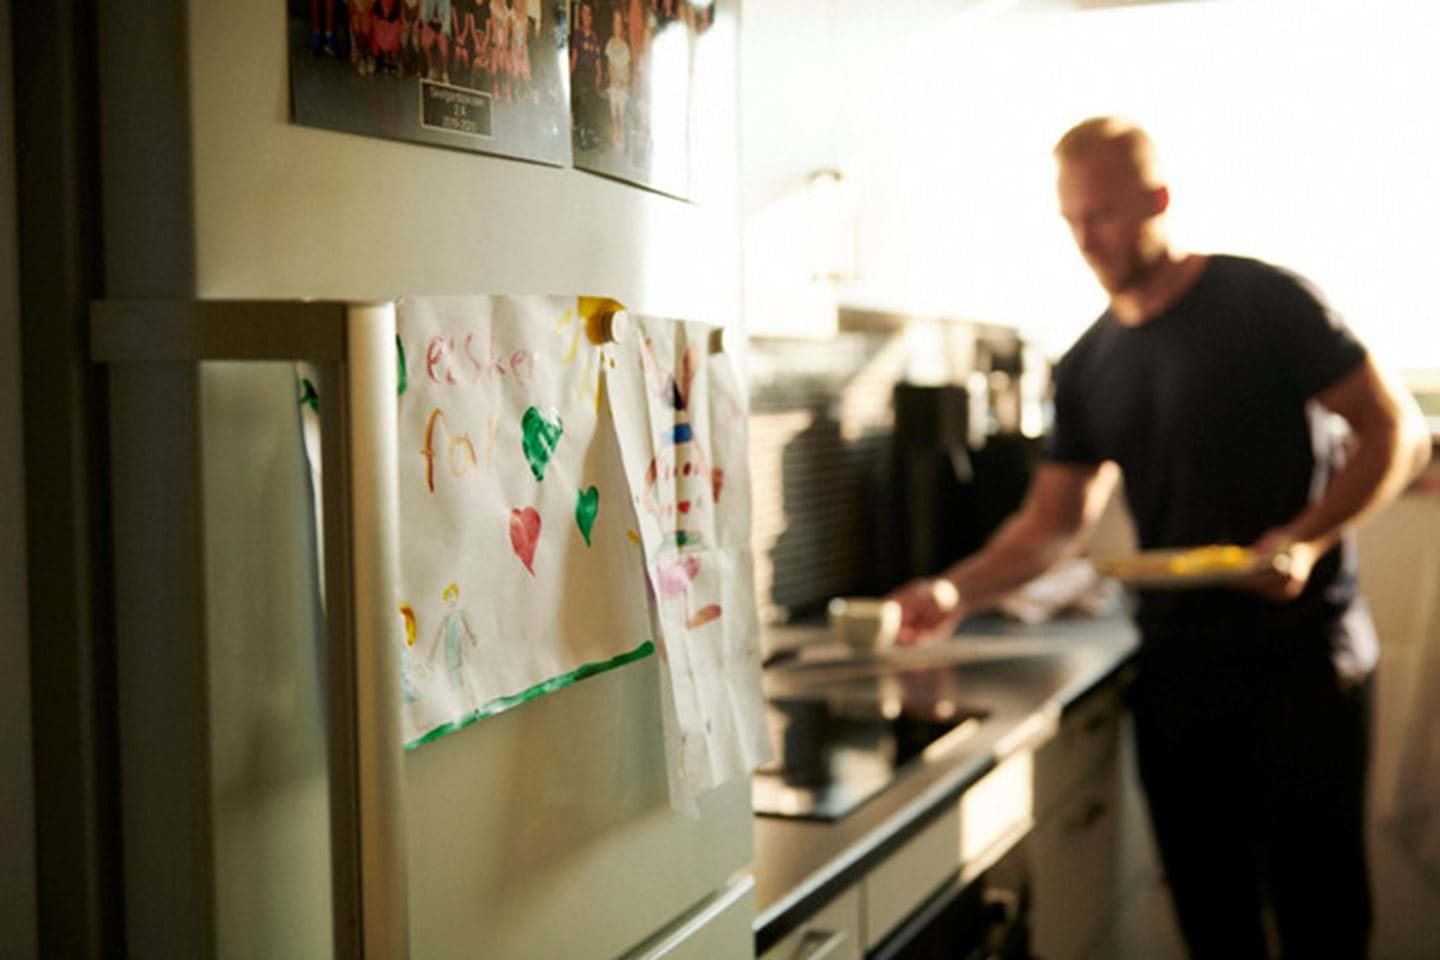 A man prepares his morning breakfast in the kitchen before work